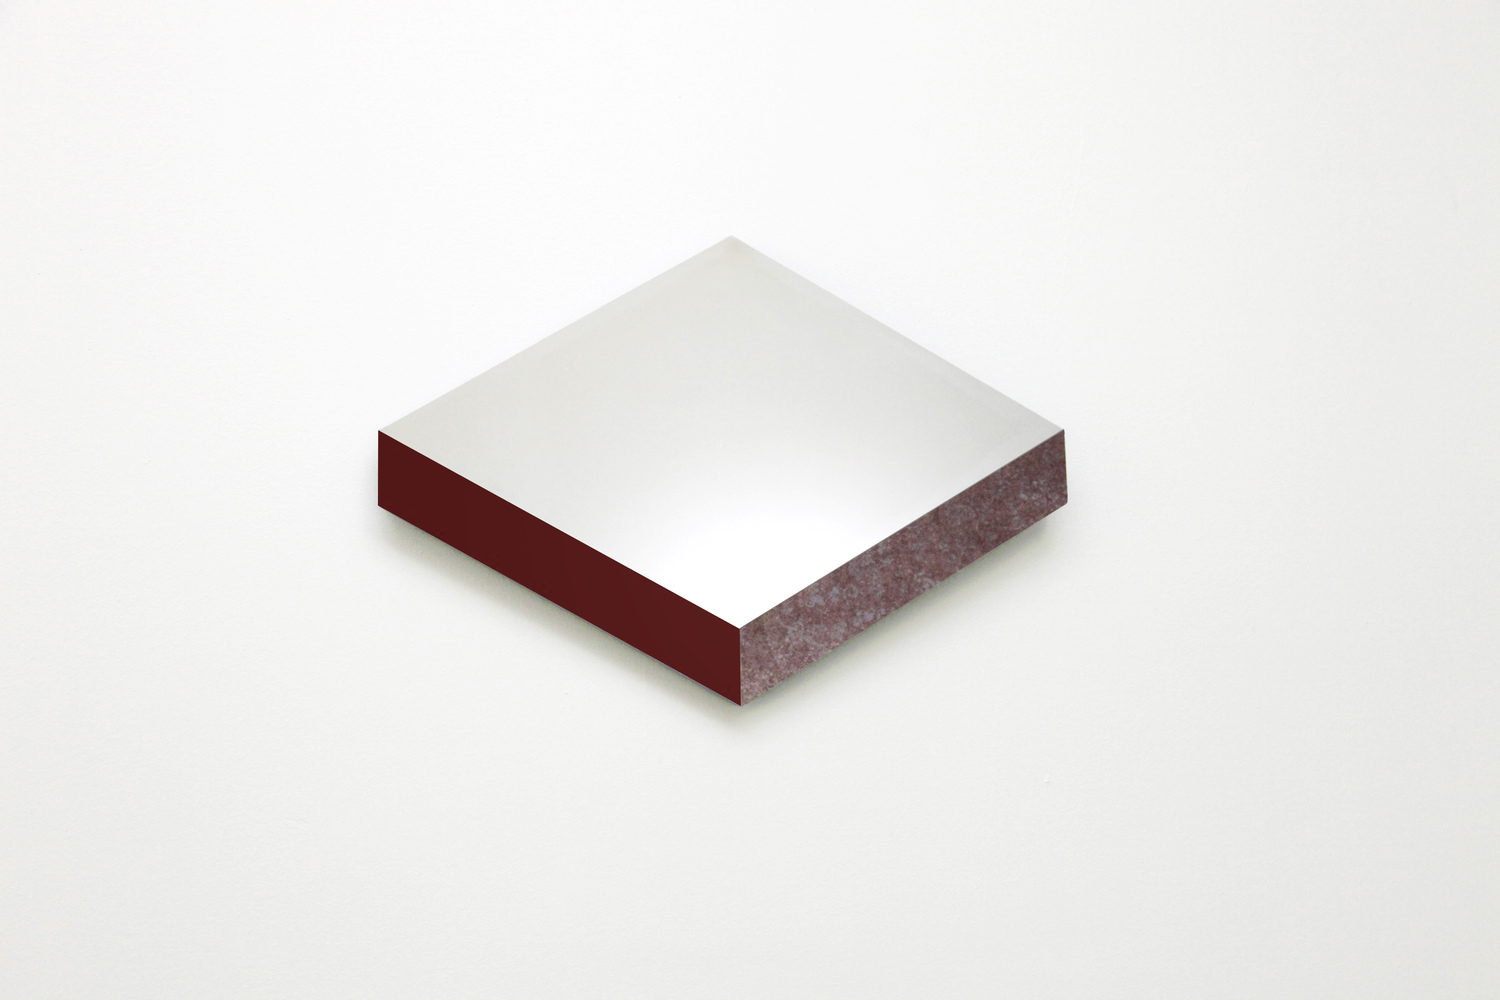 Isogrid mirror 02 red